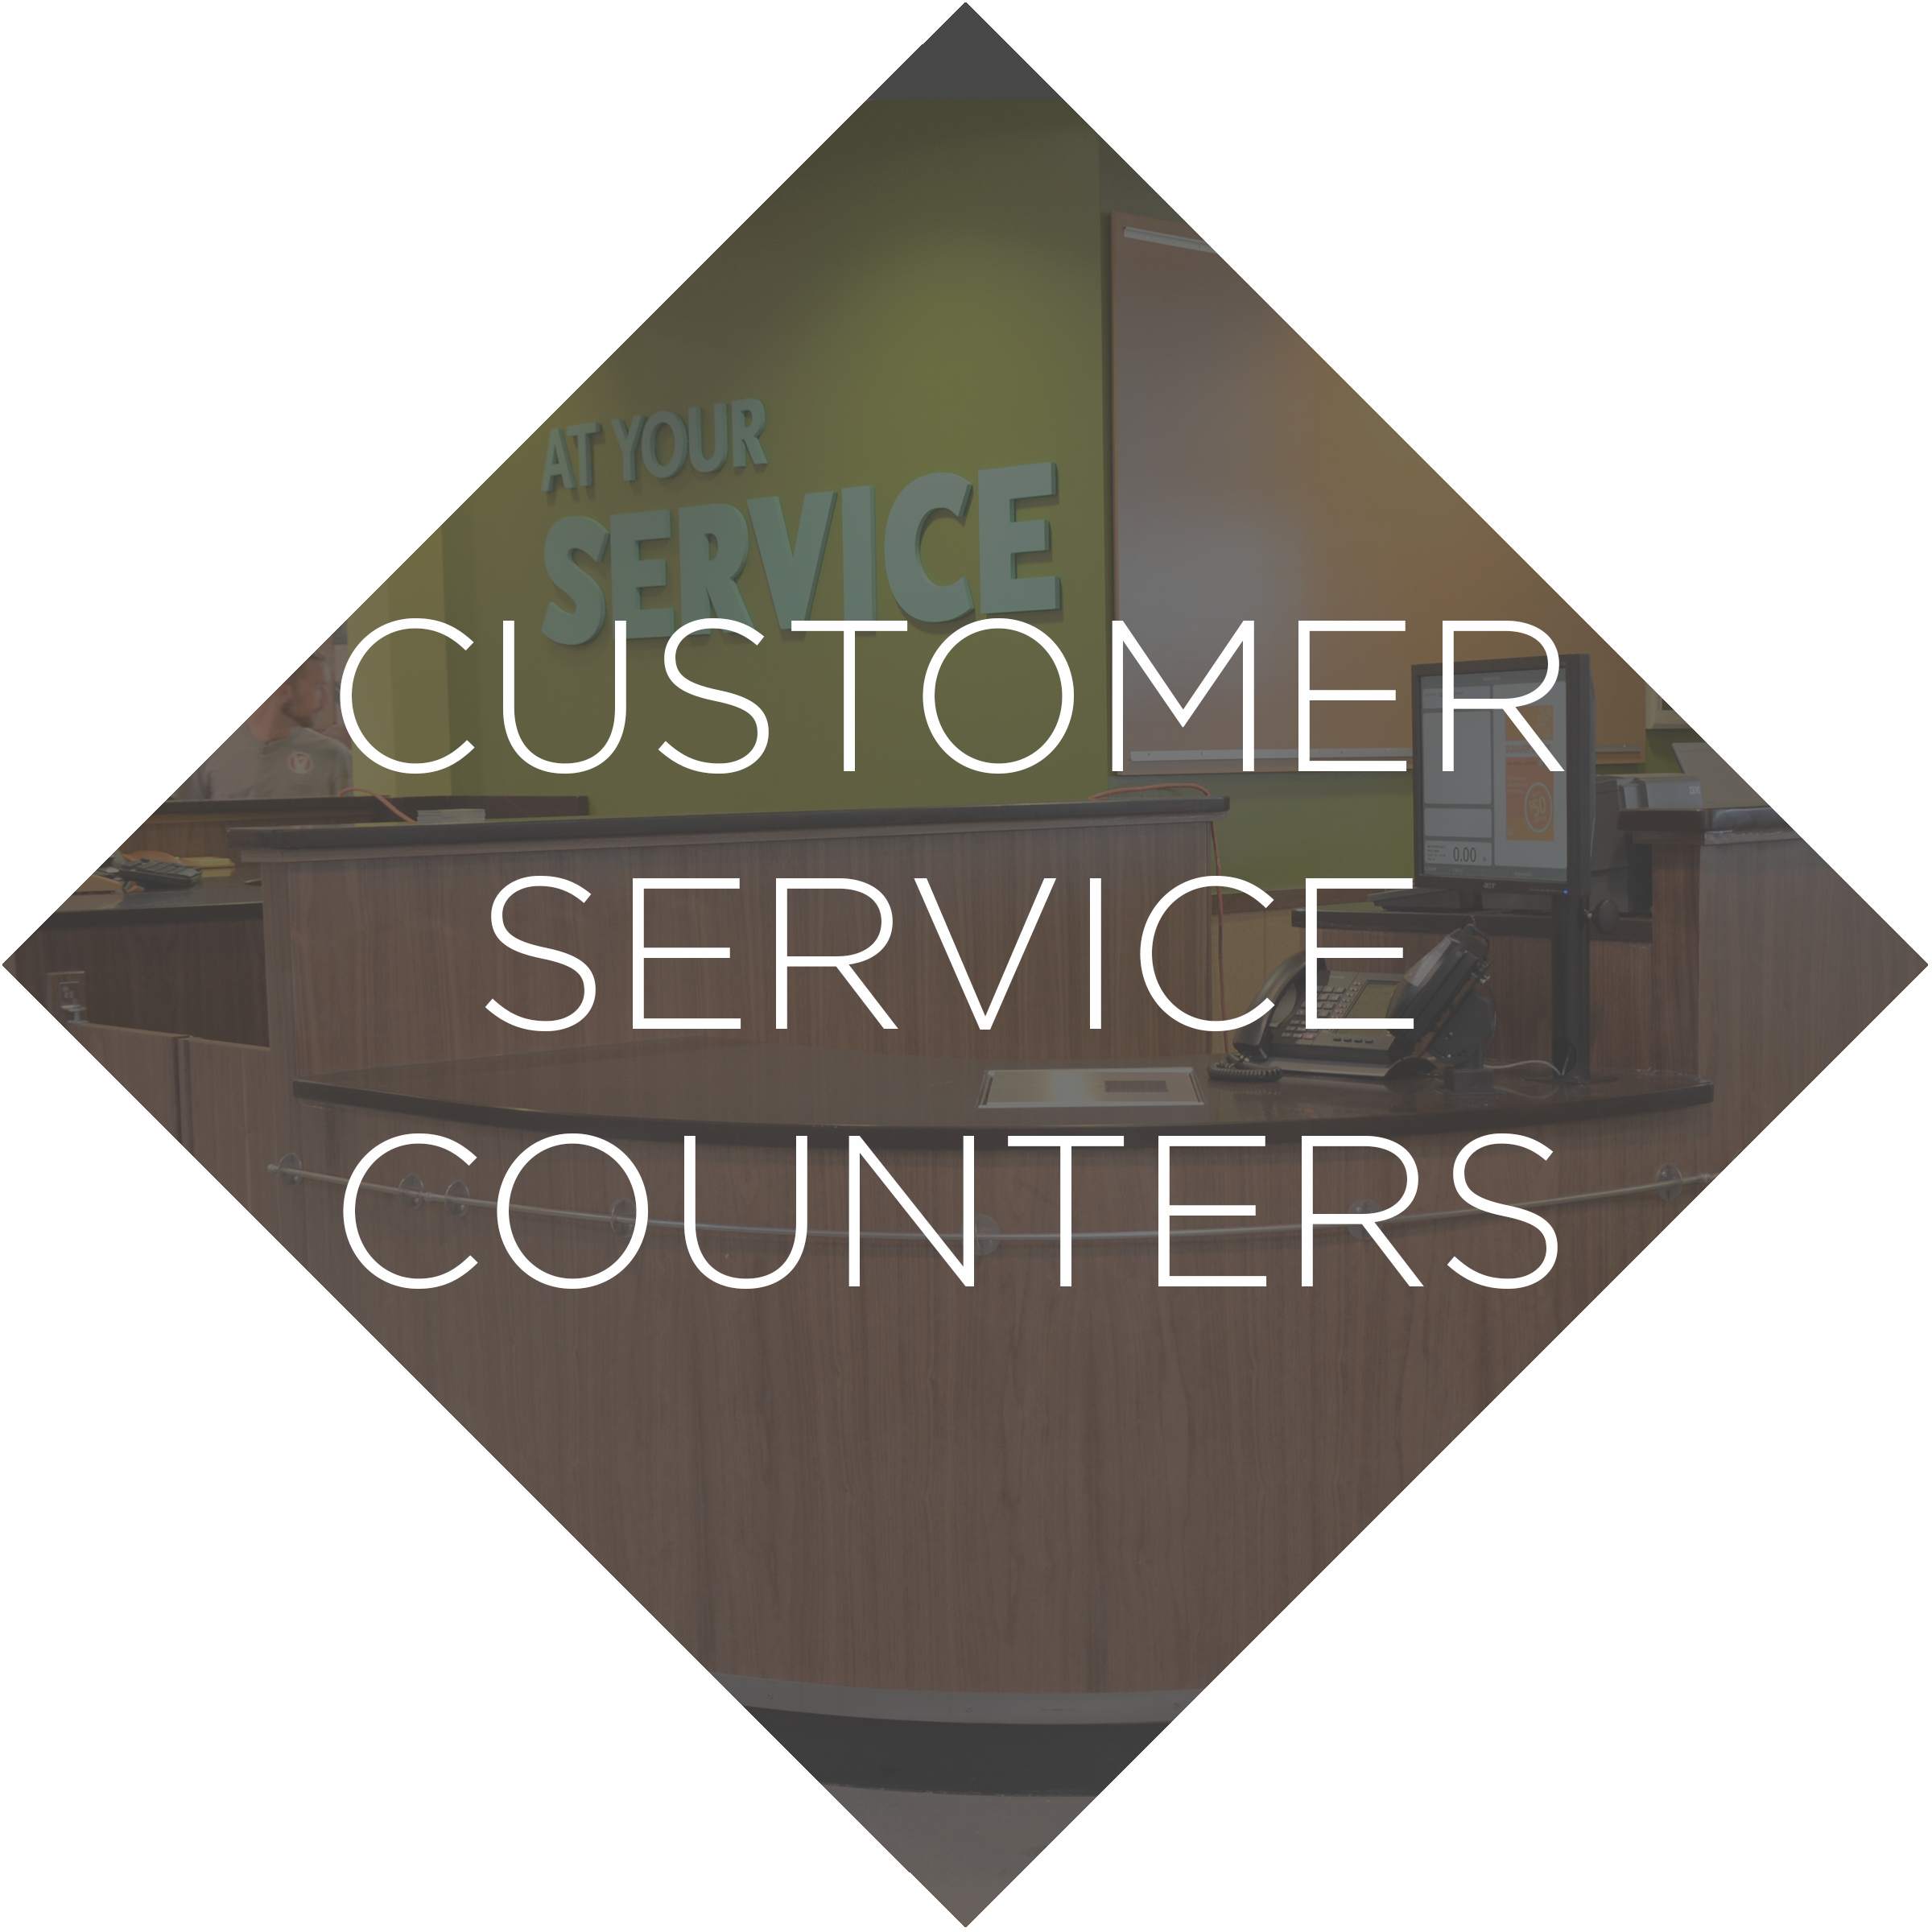 Customer Service Counters.png